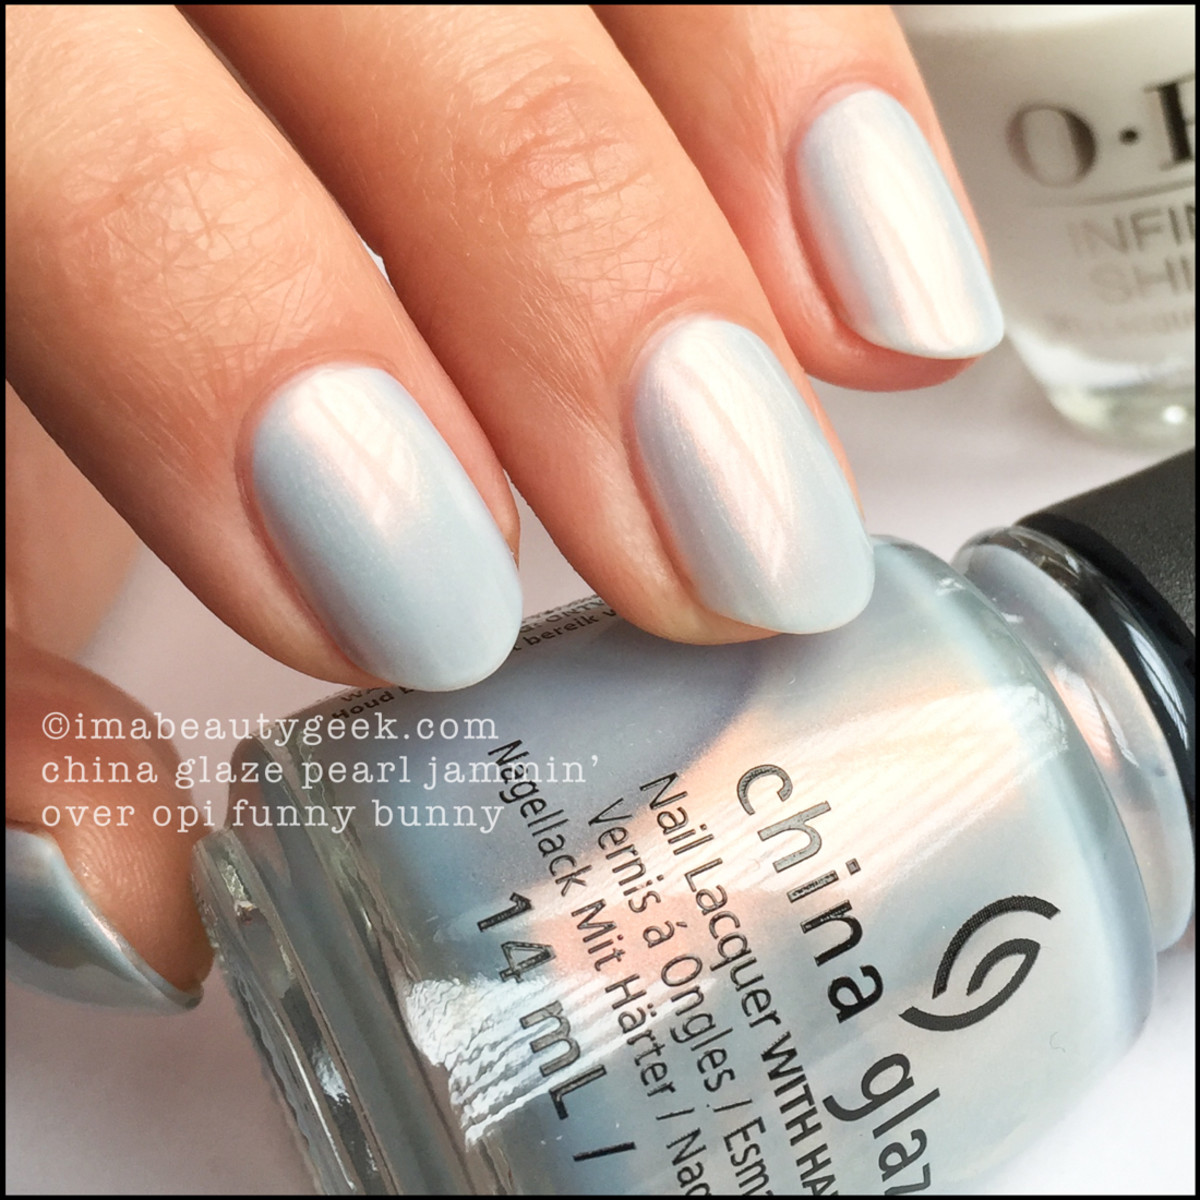 China Glaze Pearl Jammin over White_China Glaze Rebel 2016 Collection Swatches Review